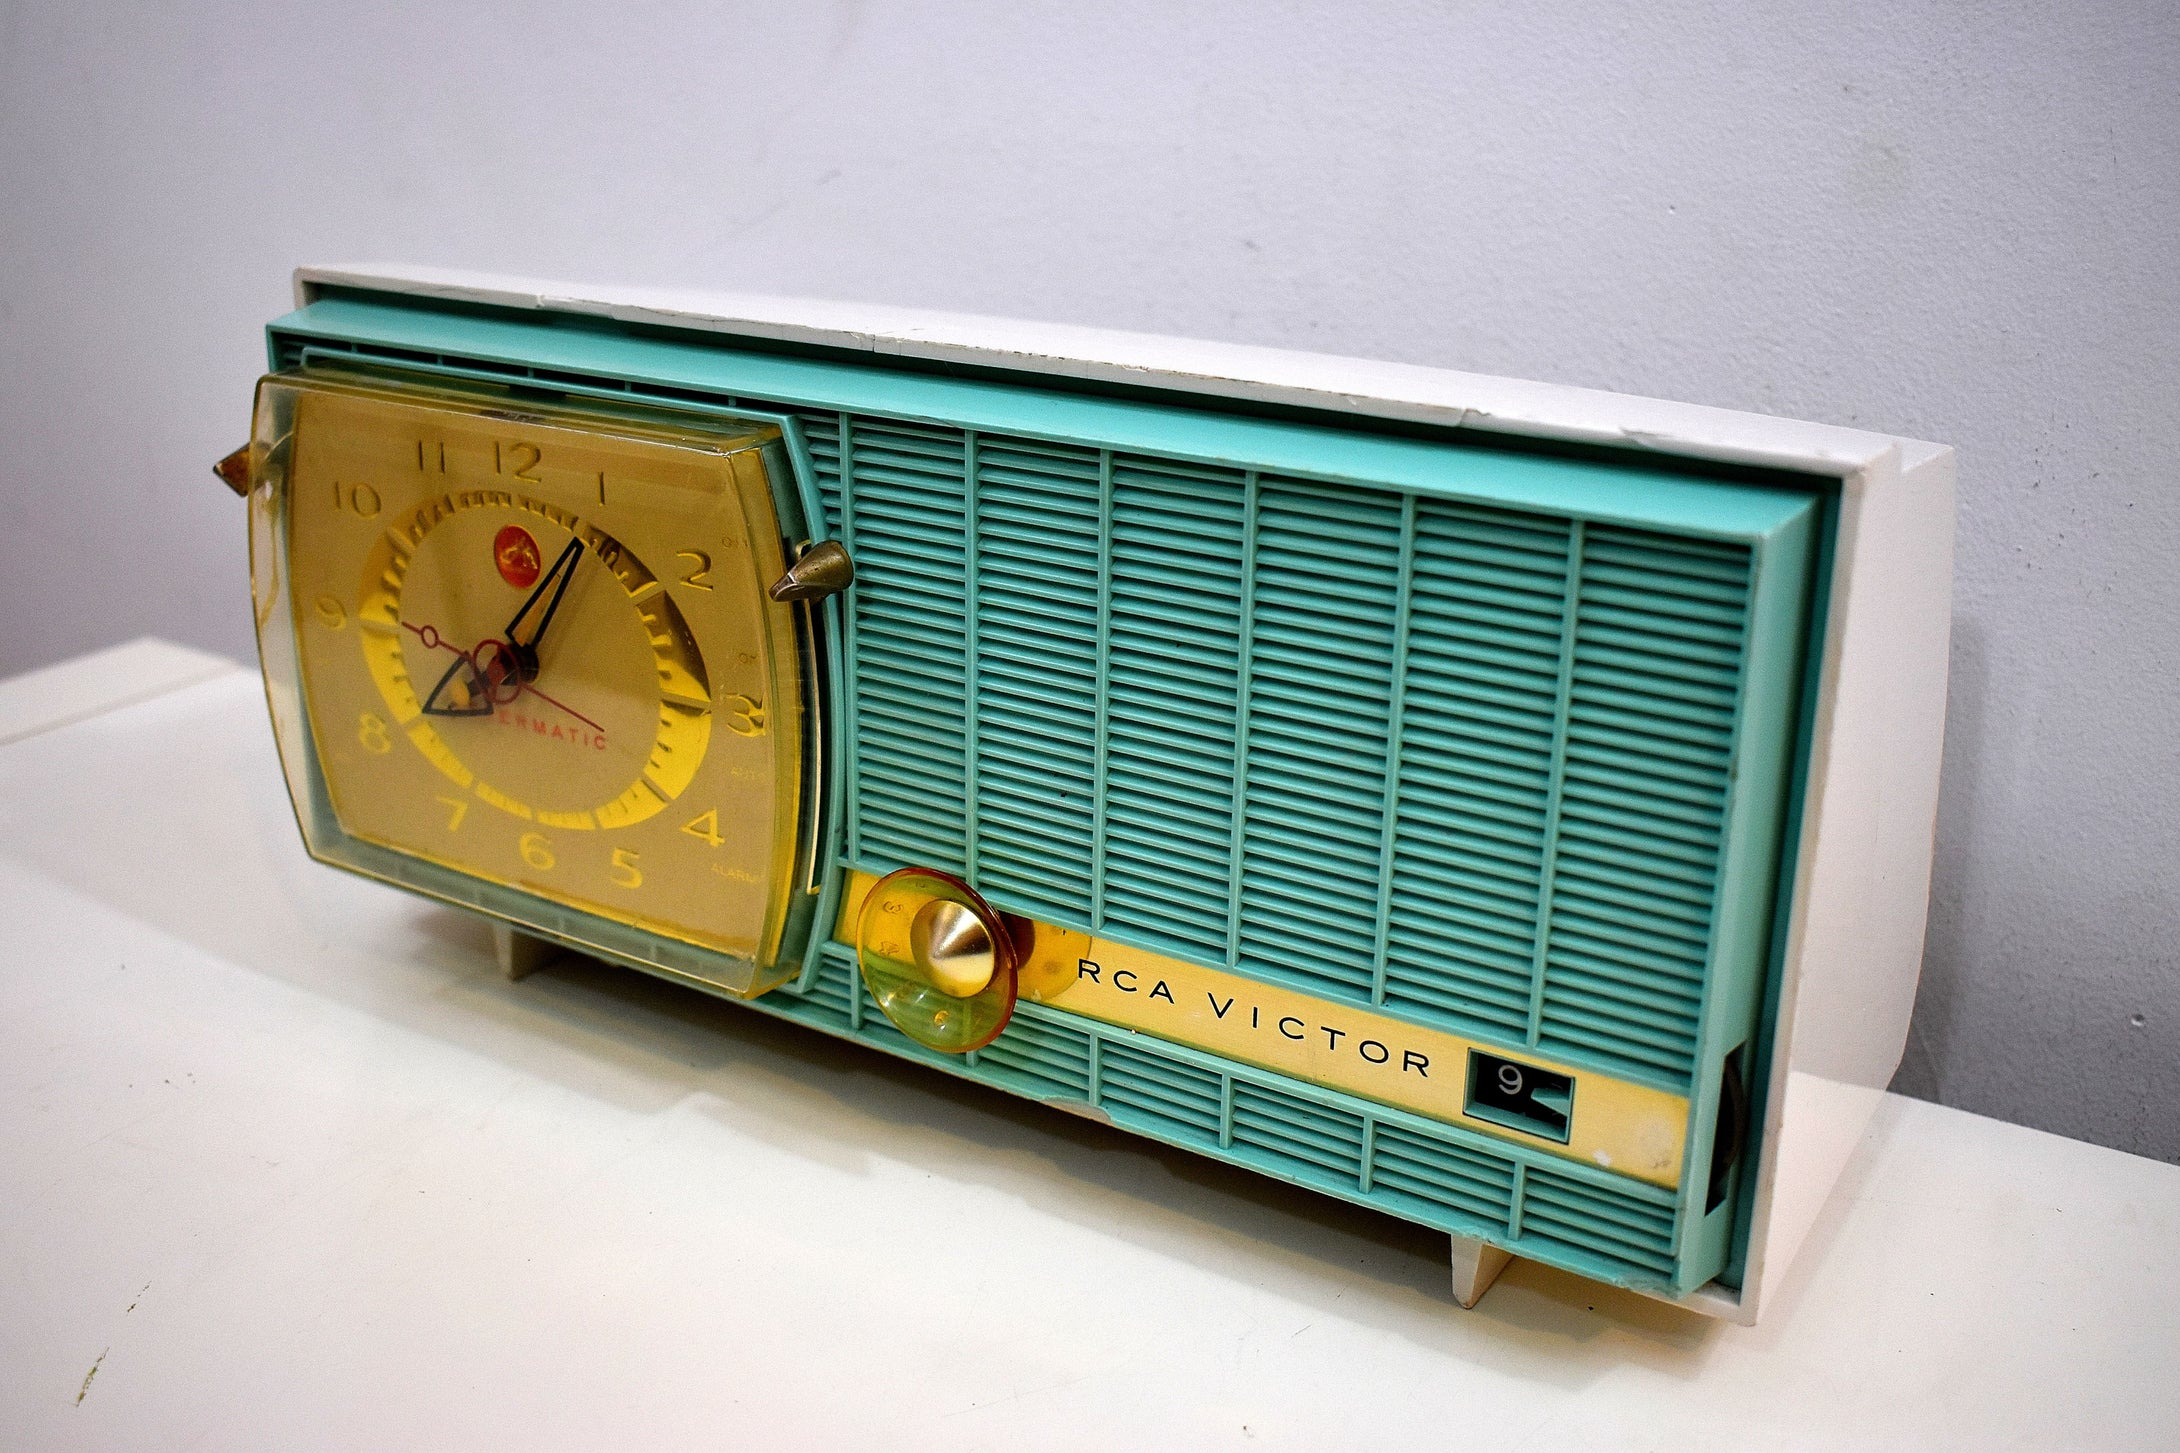 Turquoise and White Retro Jetsons Vintage 1957 RCA Victor Model C-3HE AM Vacuum Tube Radio